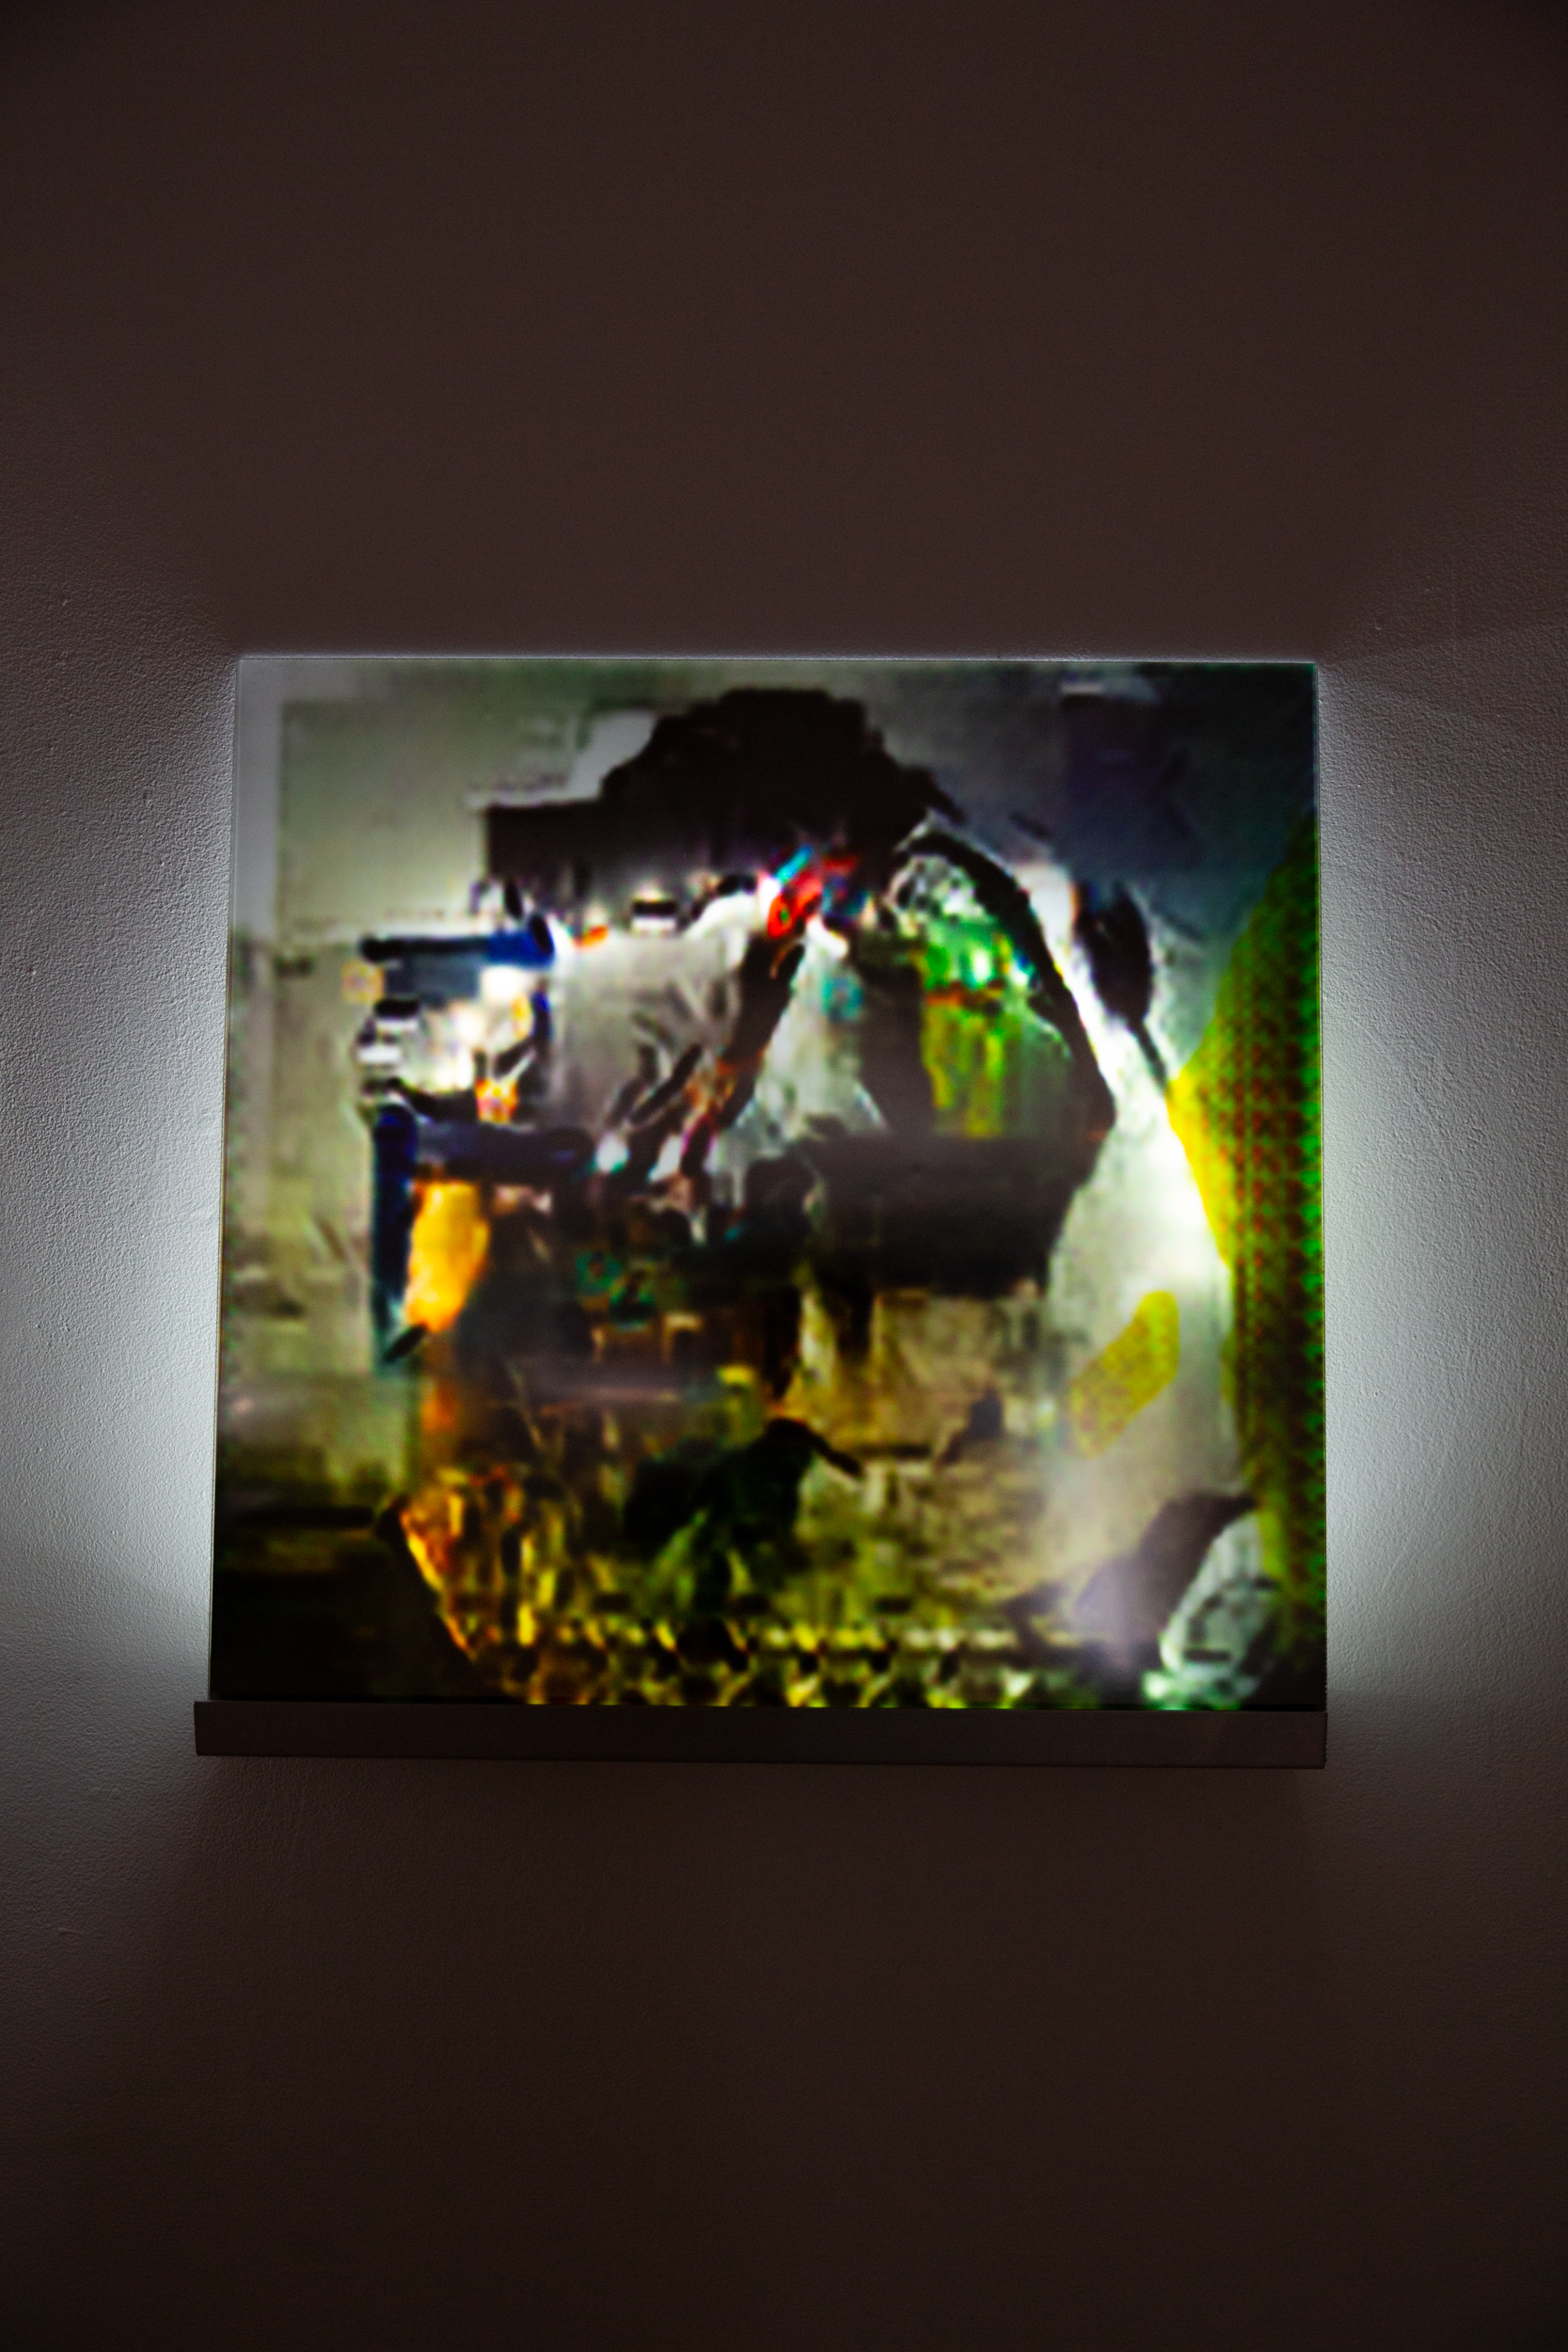 A SERIES OF DISTRACTIONS HAVE CONCEPTUALLY BEEN EXPERIENCE.  Inkjet Print, Acrylic, LEDs, Deep Convolutional Generative Adversarial Networks(Taehoon Kim), 24 X 24 X 4.5 in., 2019